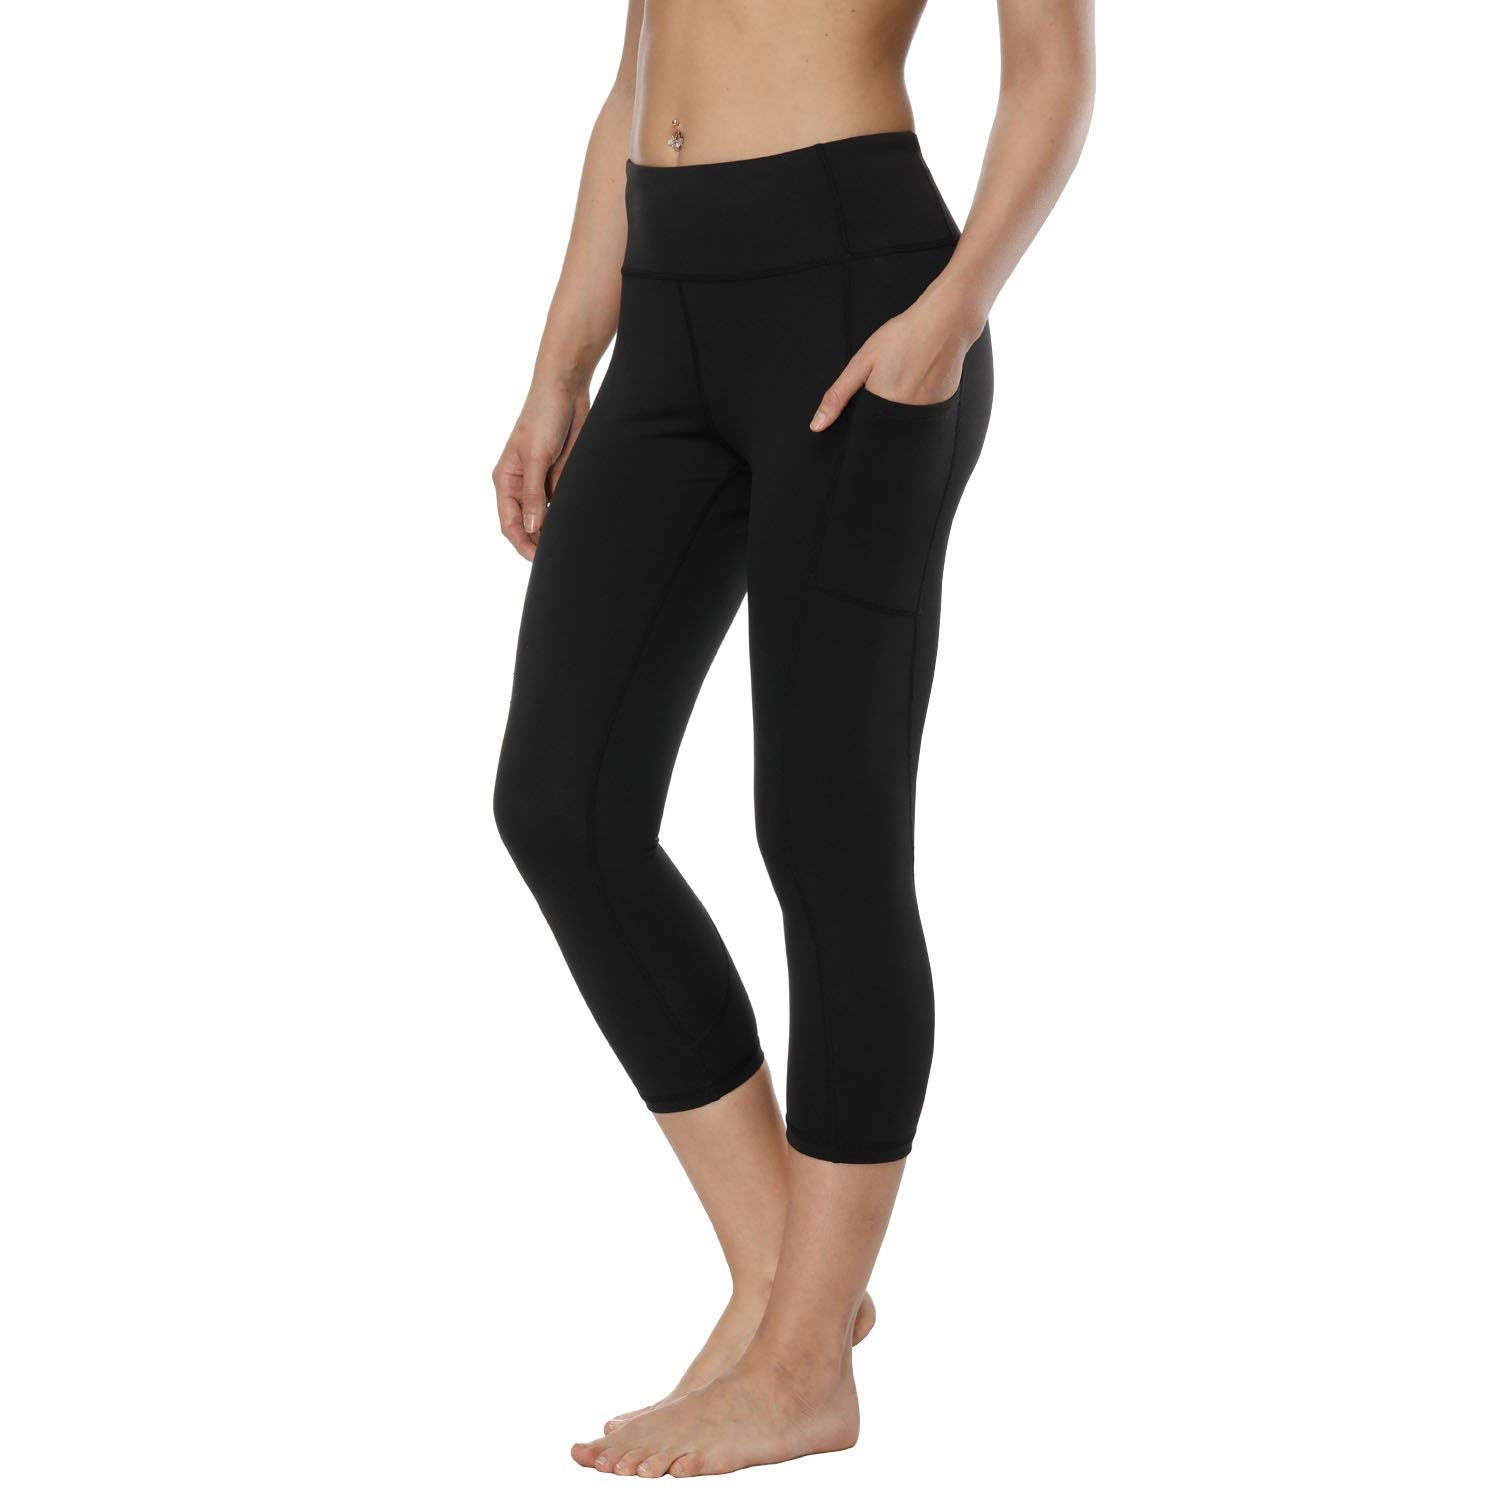 Cropped4 RURING Women's High Waist Yoga Pants Tummy Control Workout Running 4 Way Stretch Yoga Leggings